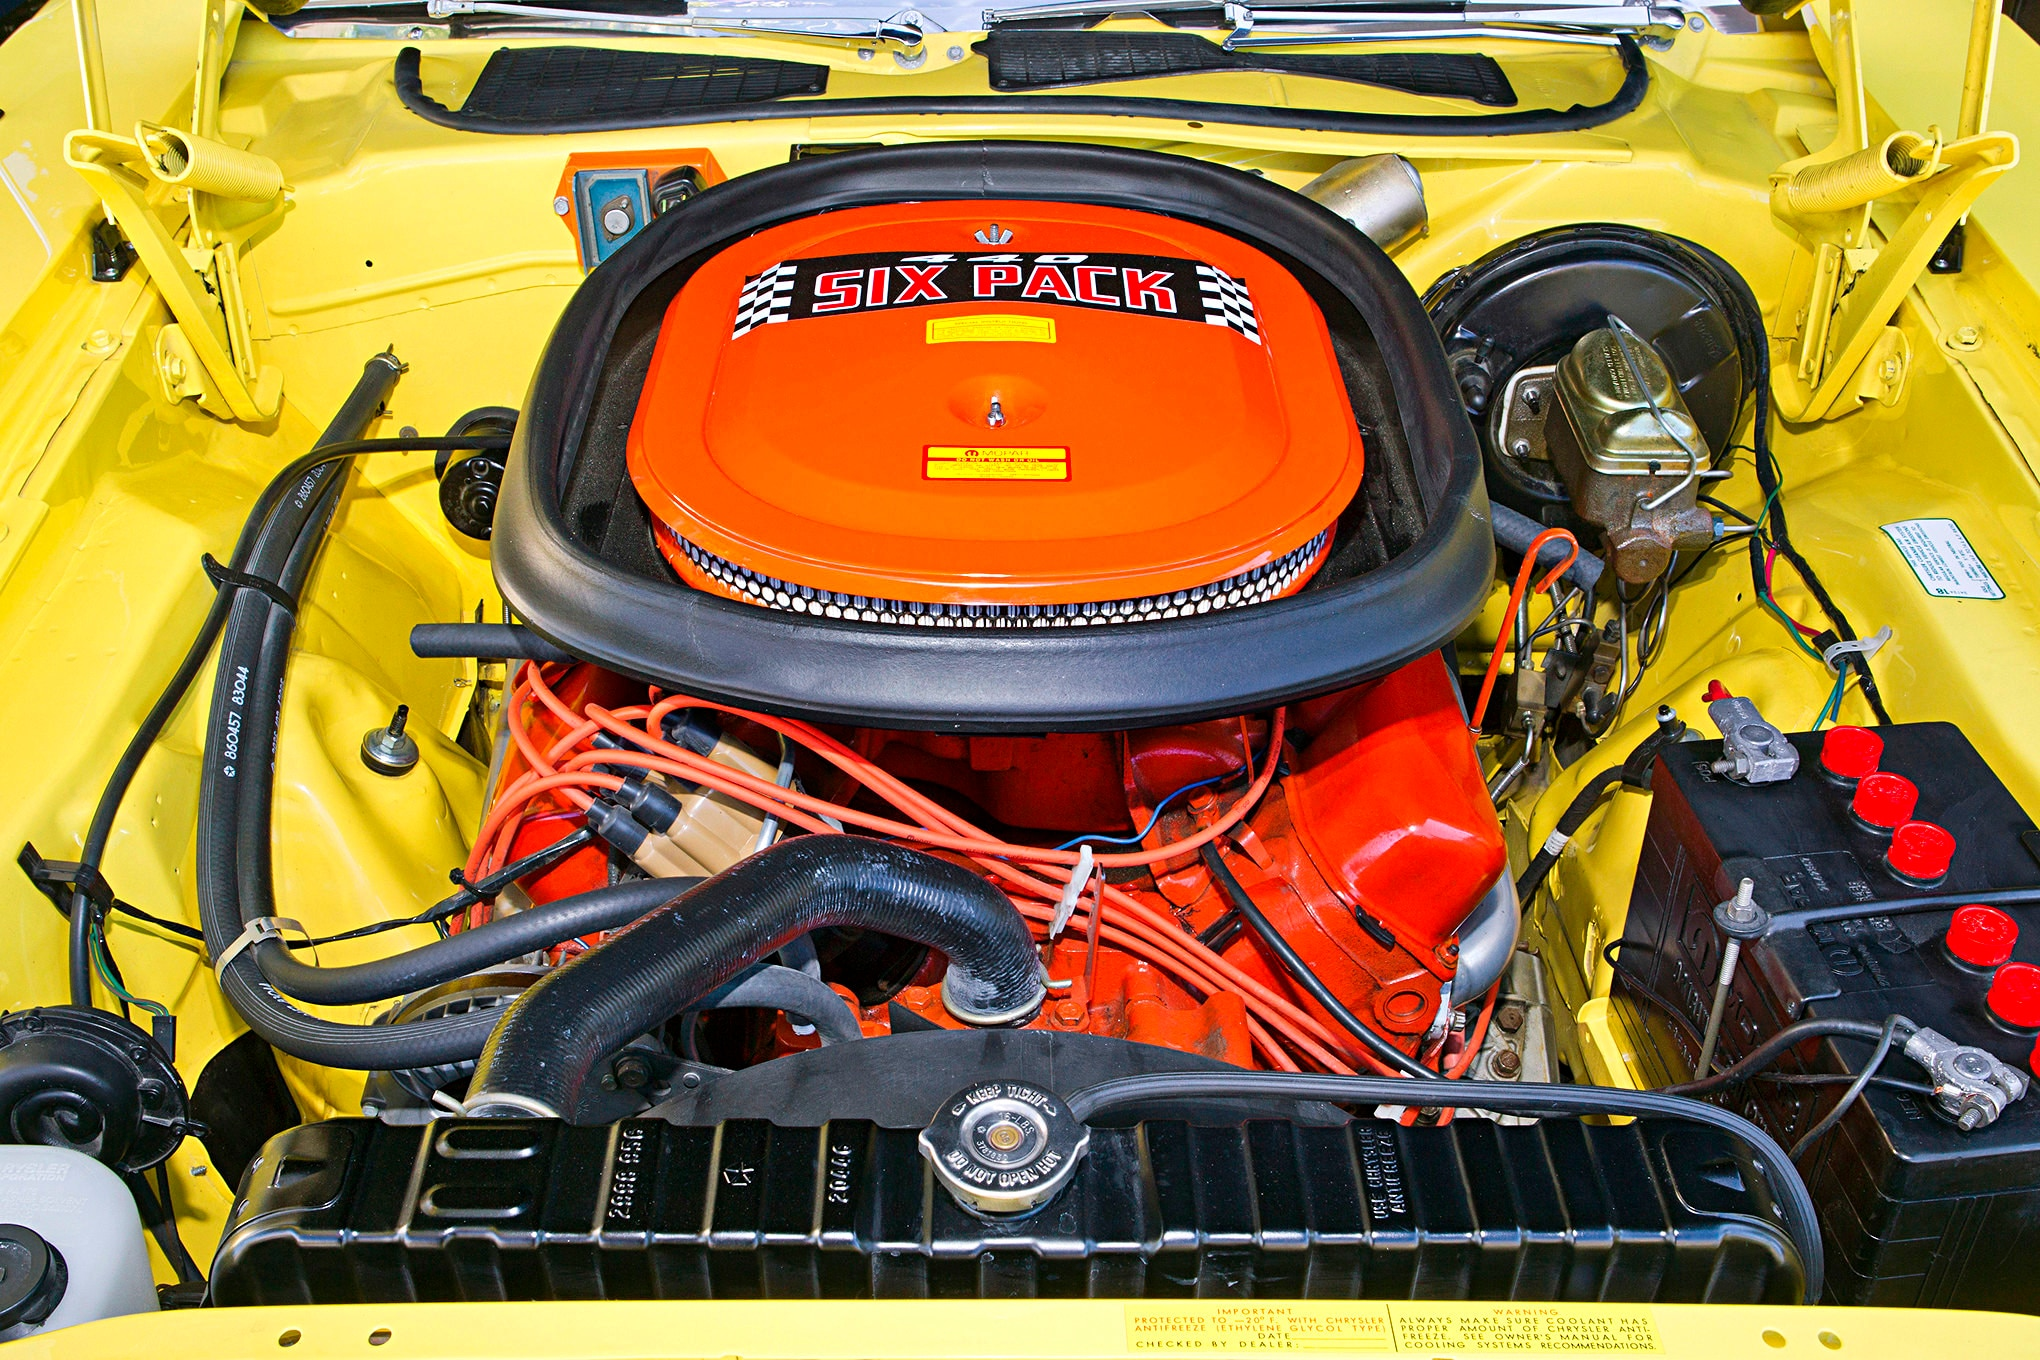 Just shy of 500ci, this stroker RB engine has more than enough power to roast those rear tires off for lengths you could measure from space. A wolf in stock-appearing clothing, this car is a rocket ship.